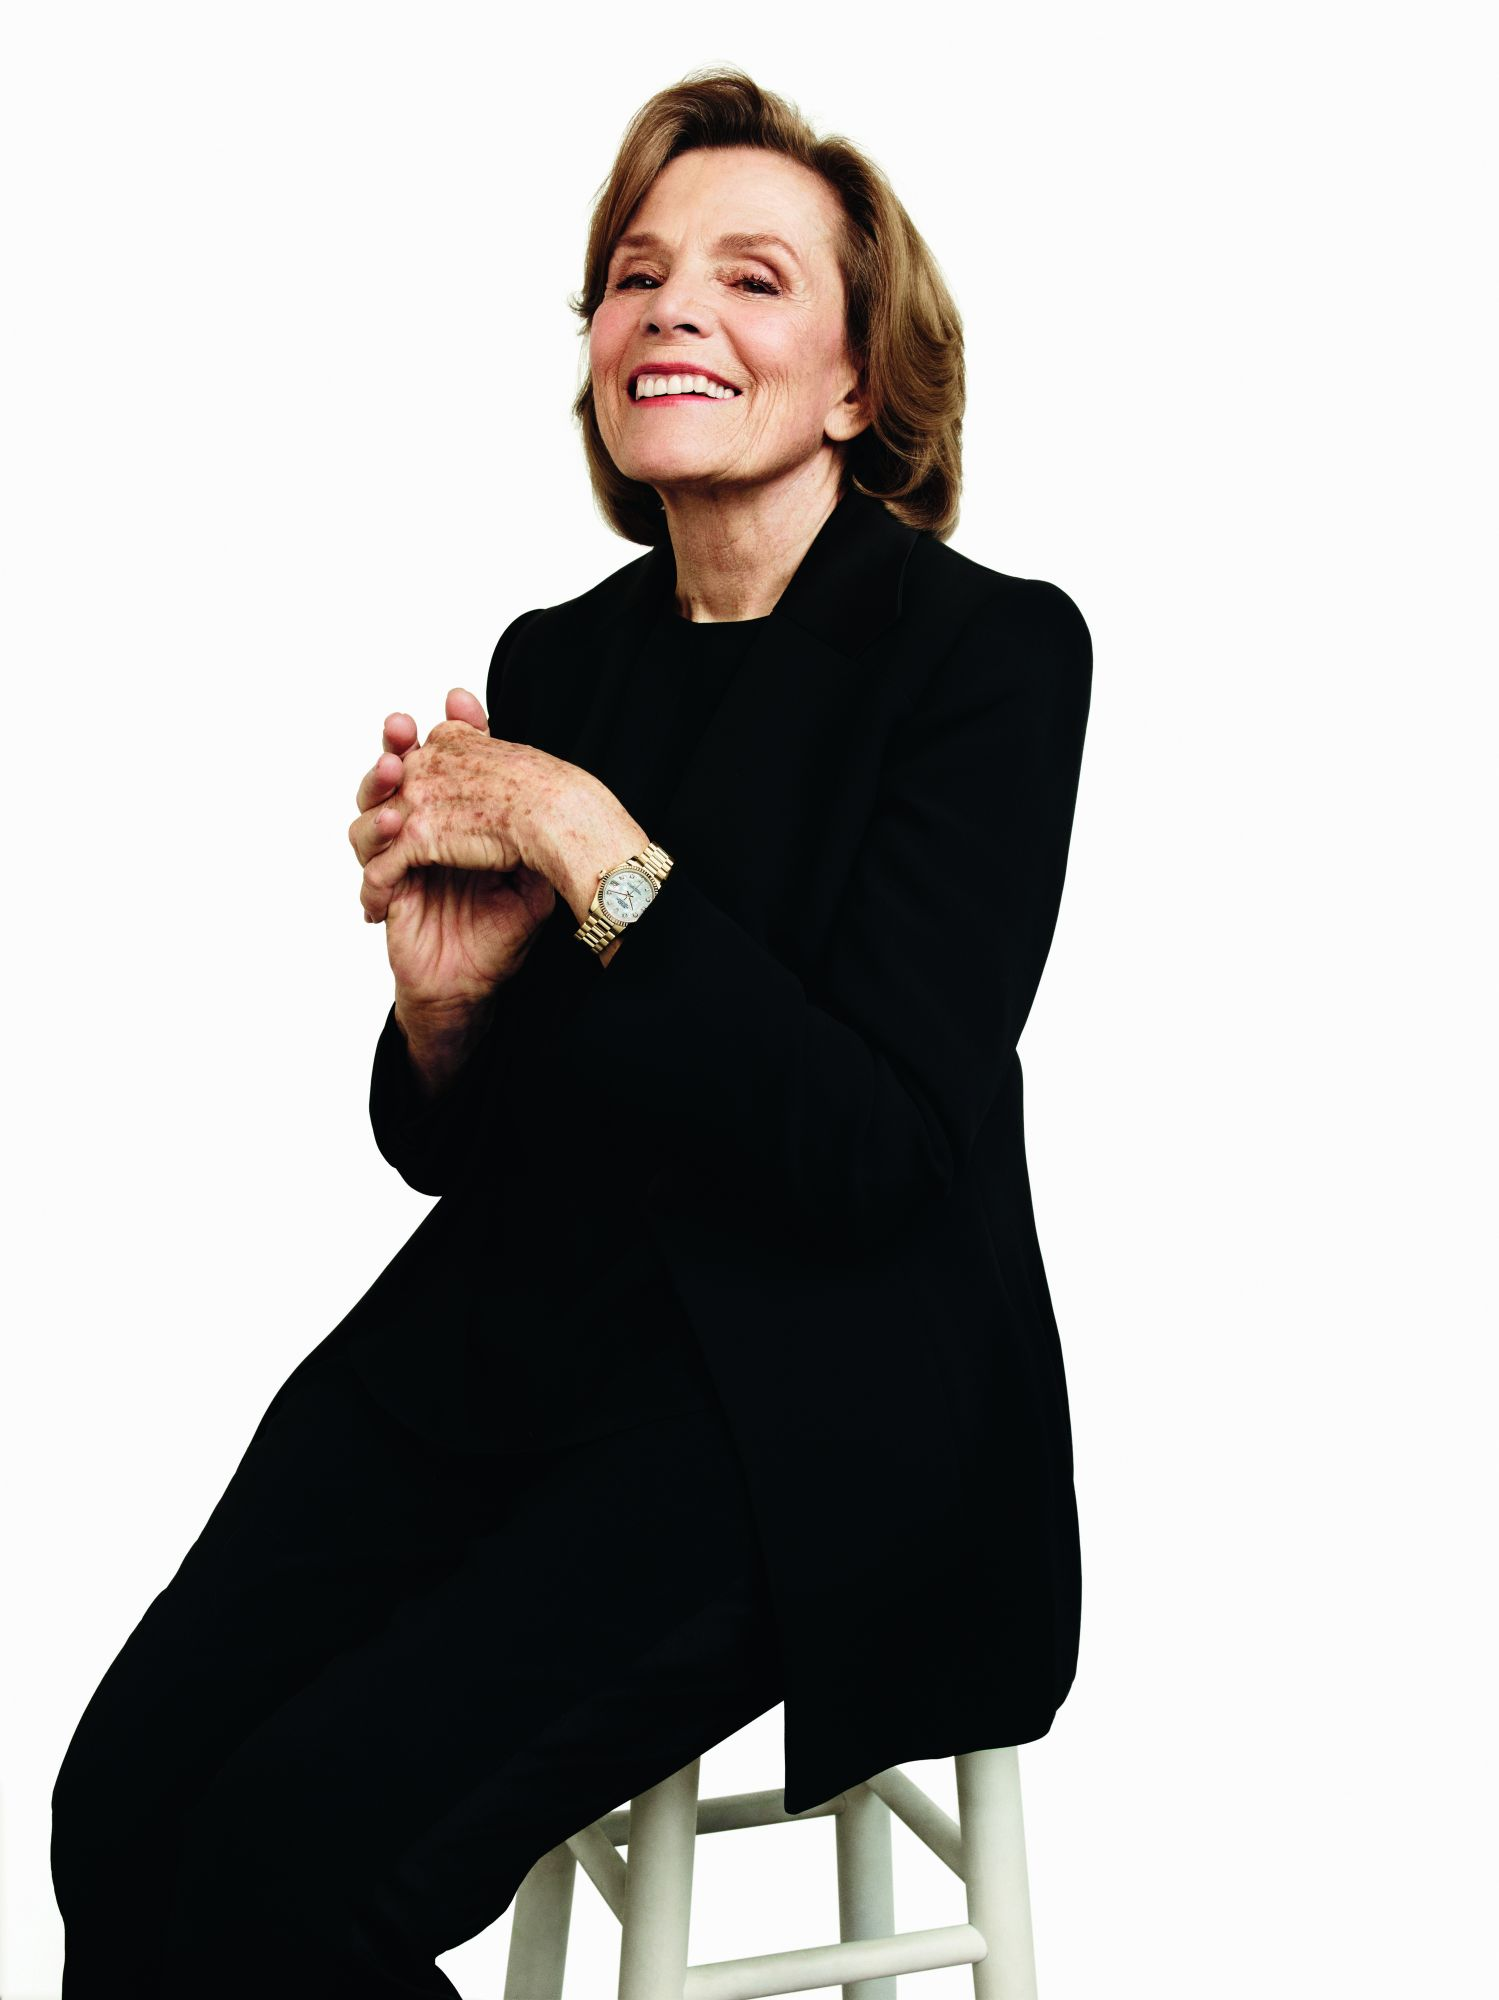 Rolex Undertakes Marine Conservation Efforts With Marine Biologist And Explorer Sylvia Earle